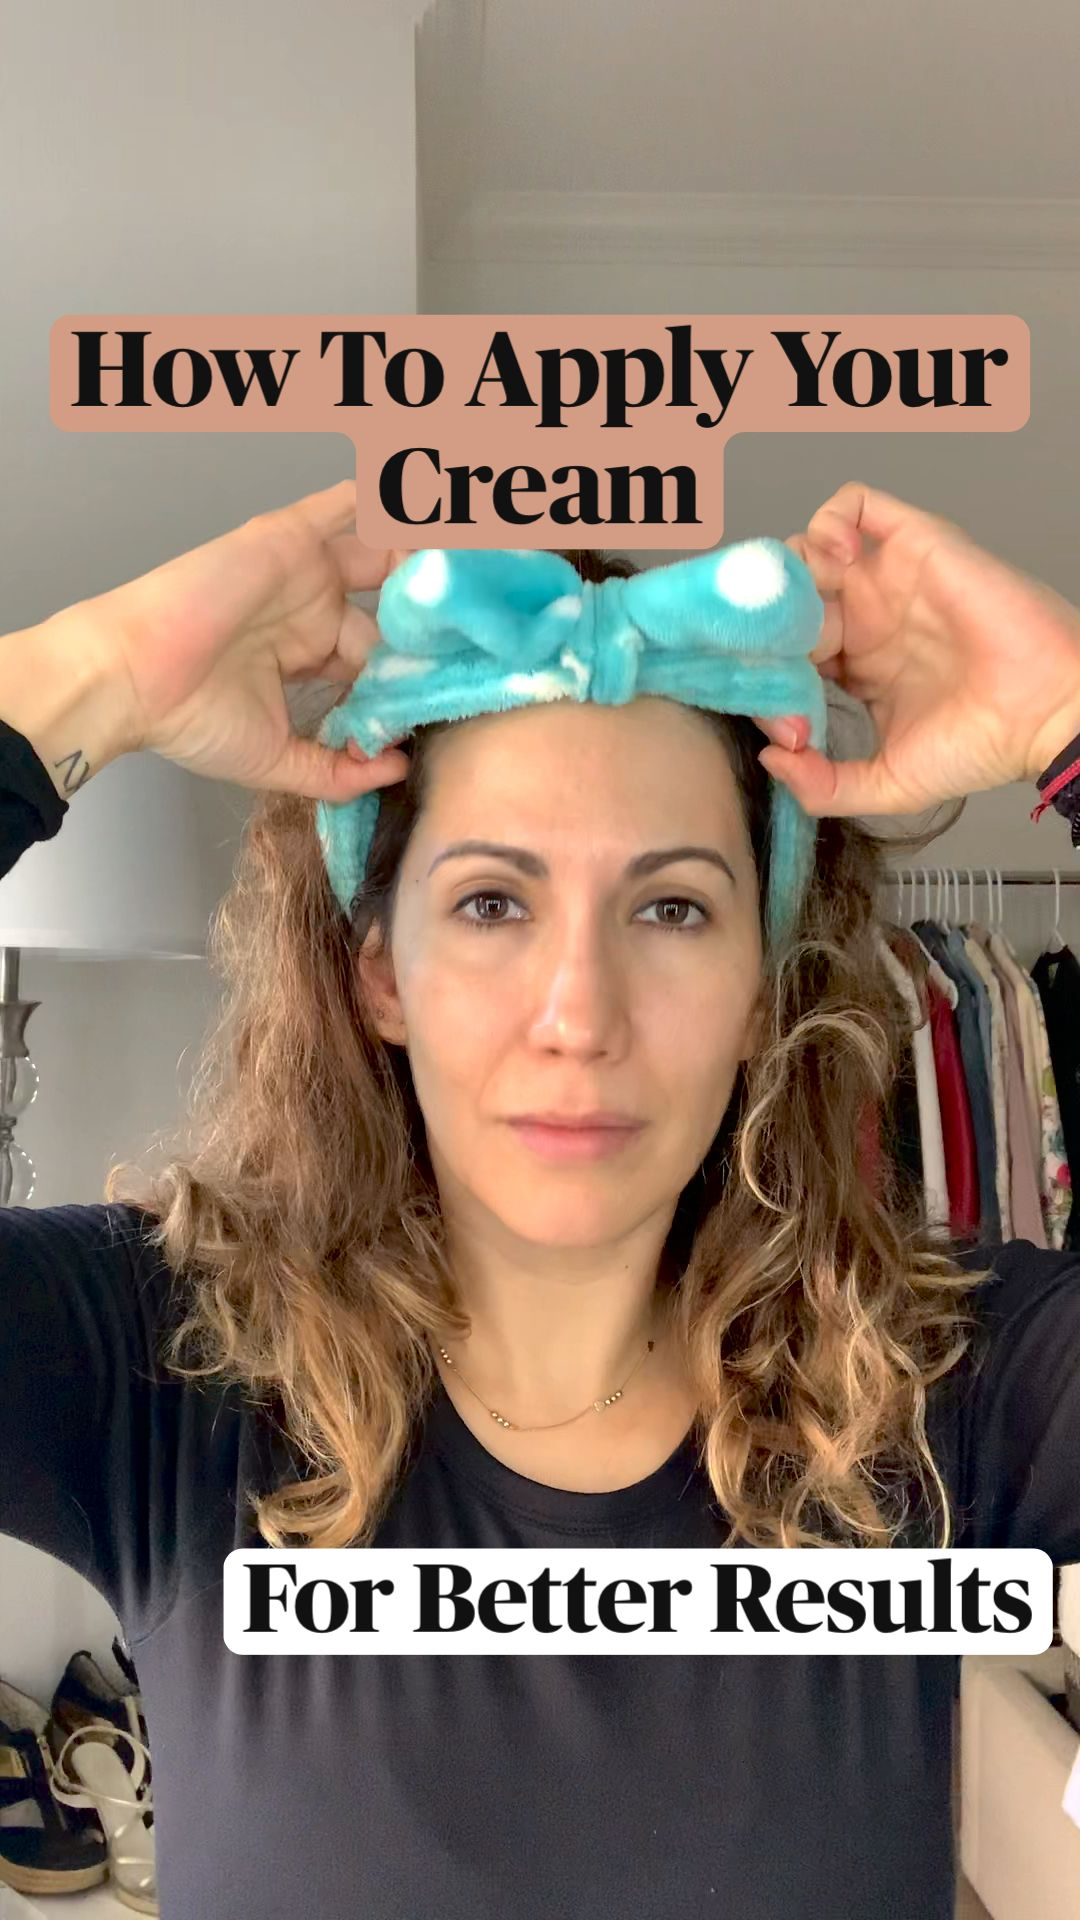 How To Apply Your Cream For Better Results